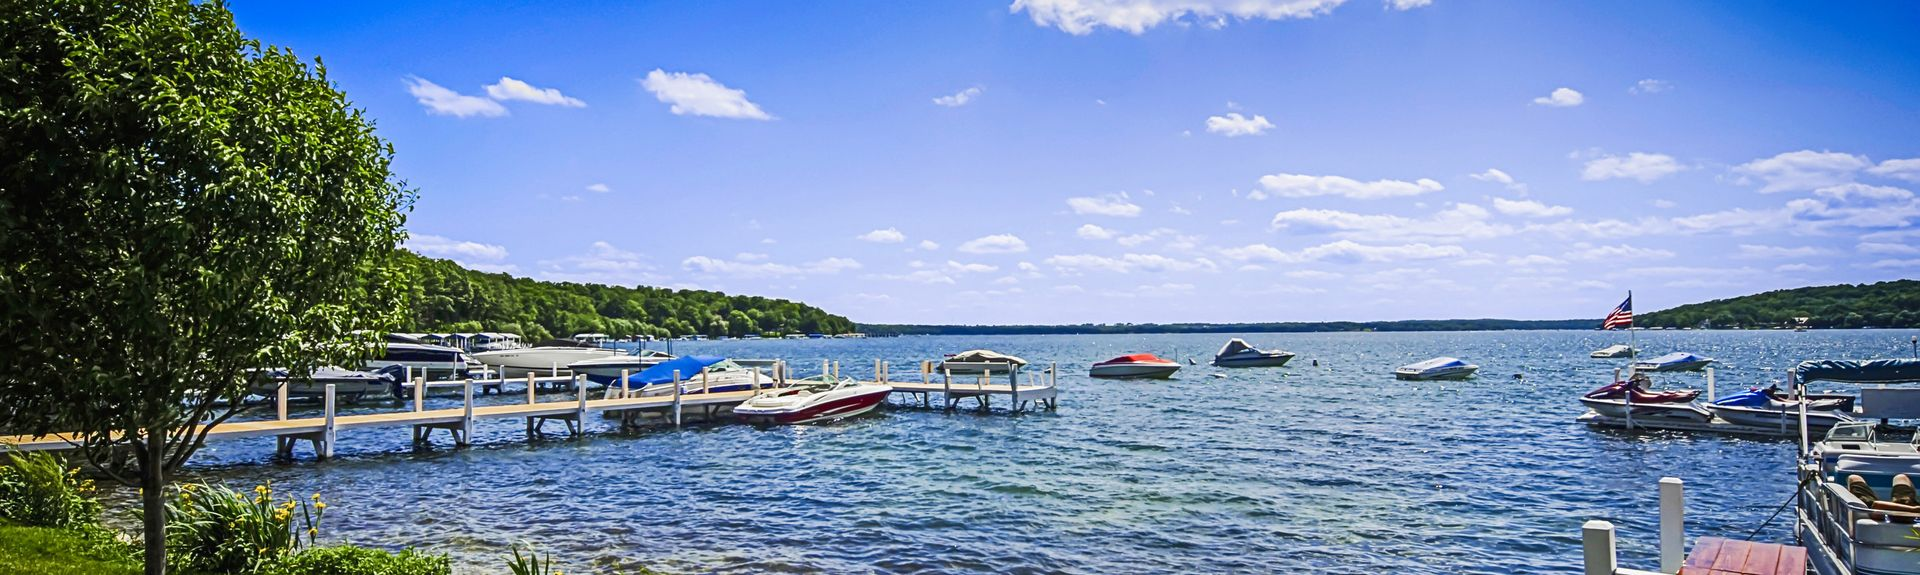 Vrbo Lake Geneva Wi Vacation Rentals House Rentals More